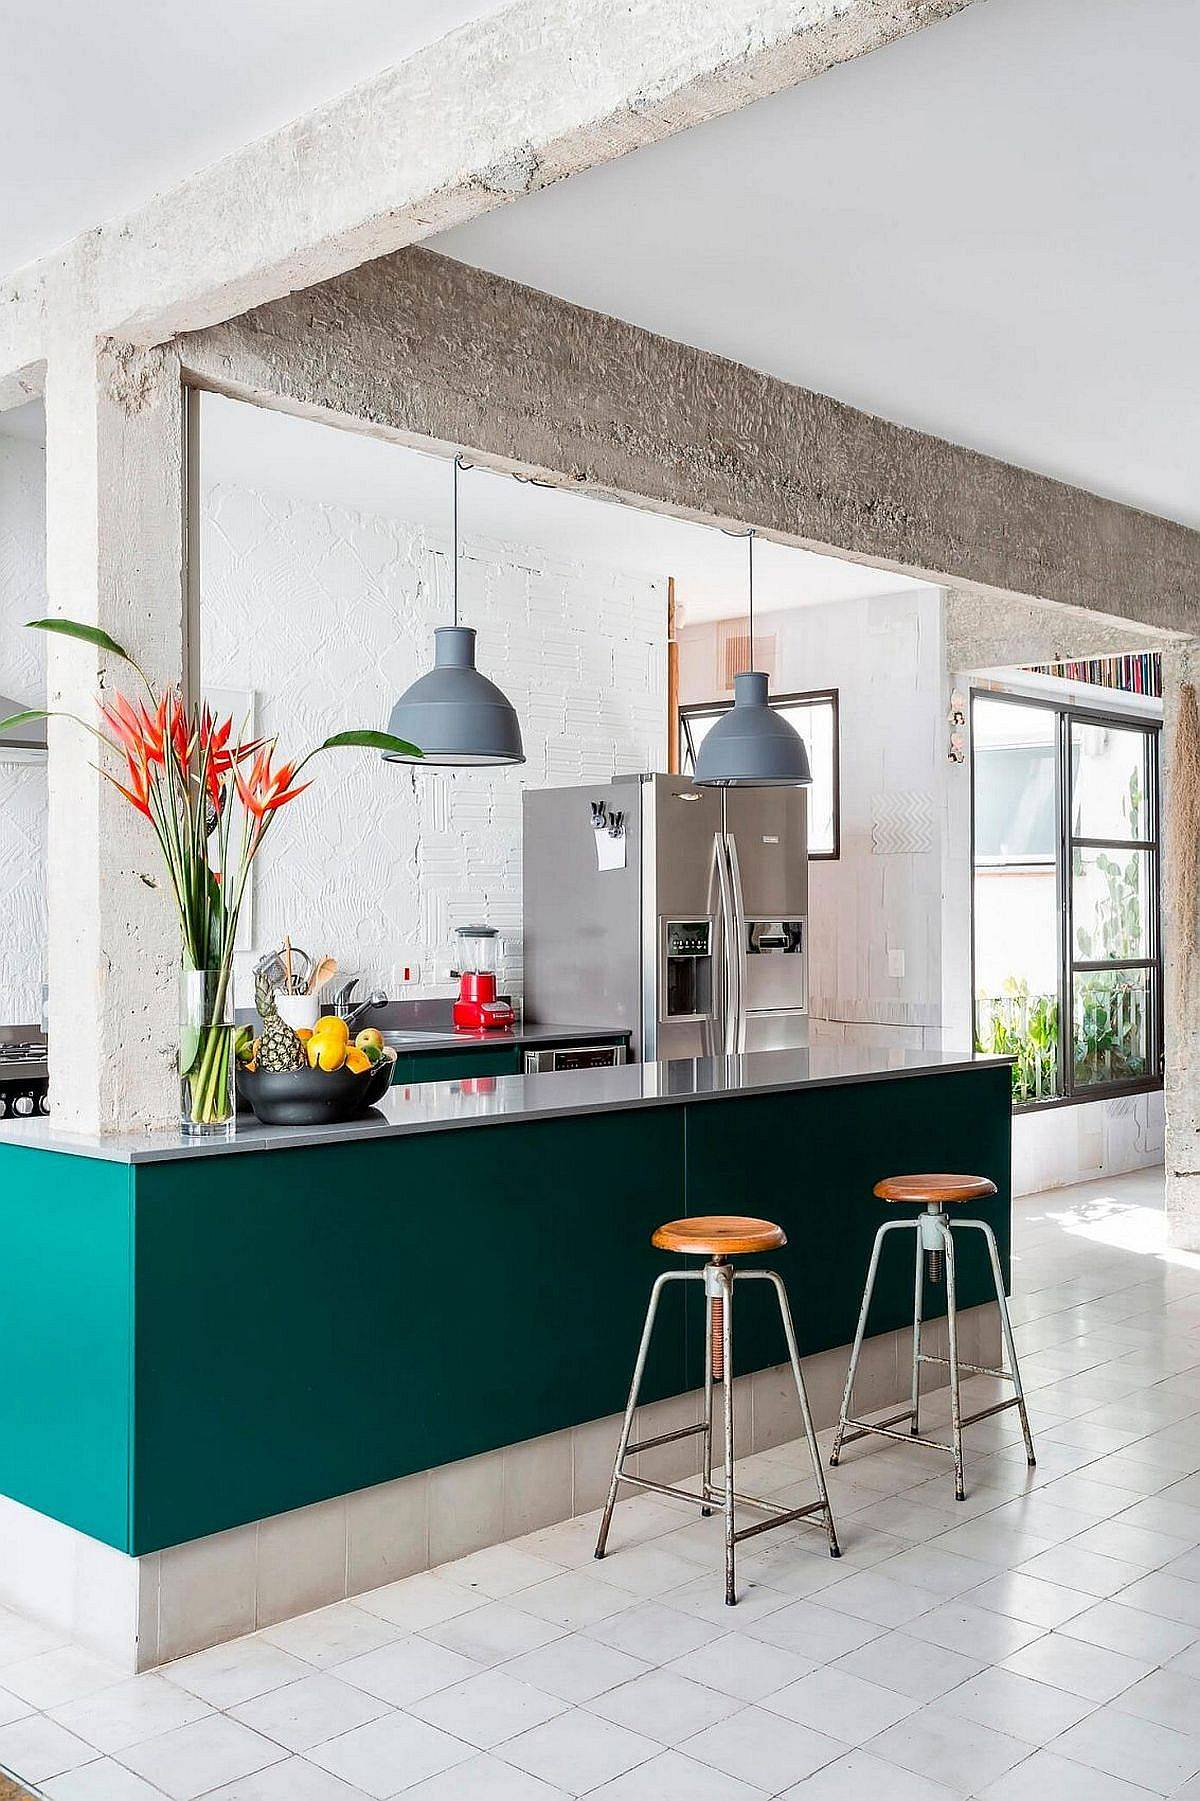 Kitchen-island-lighting-in-Sao-Paulo-makes-an-impact-despite-being-nothing-unusual-17500